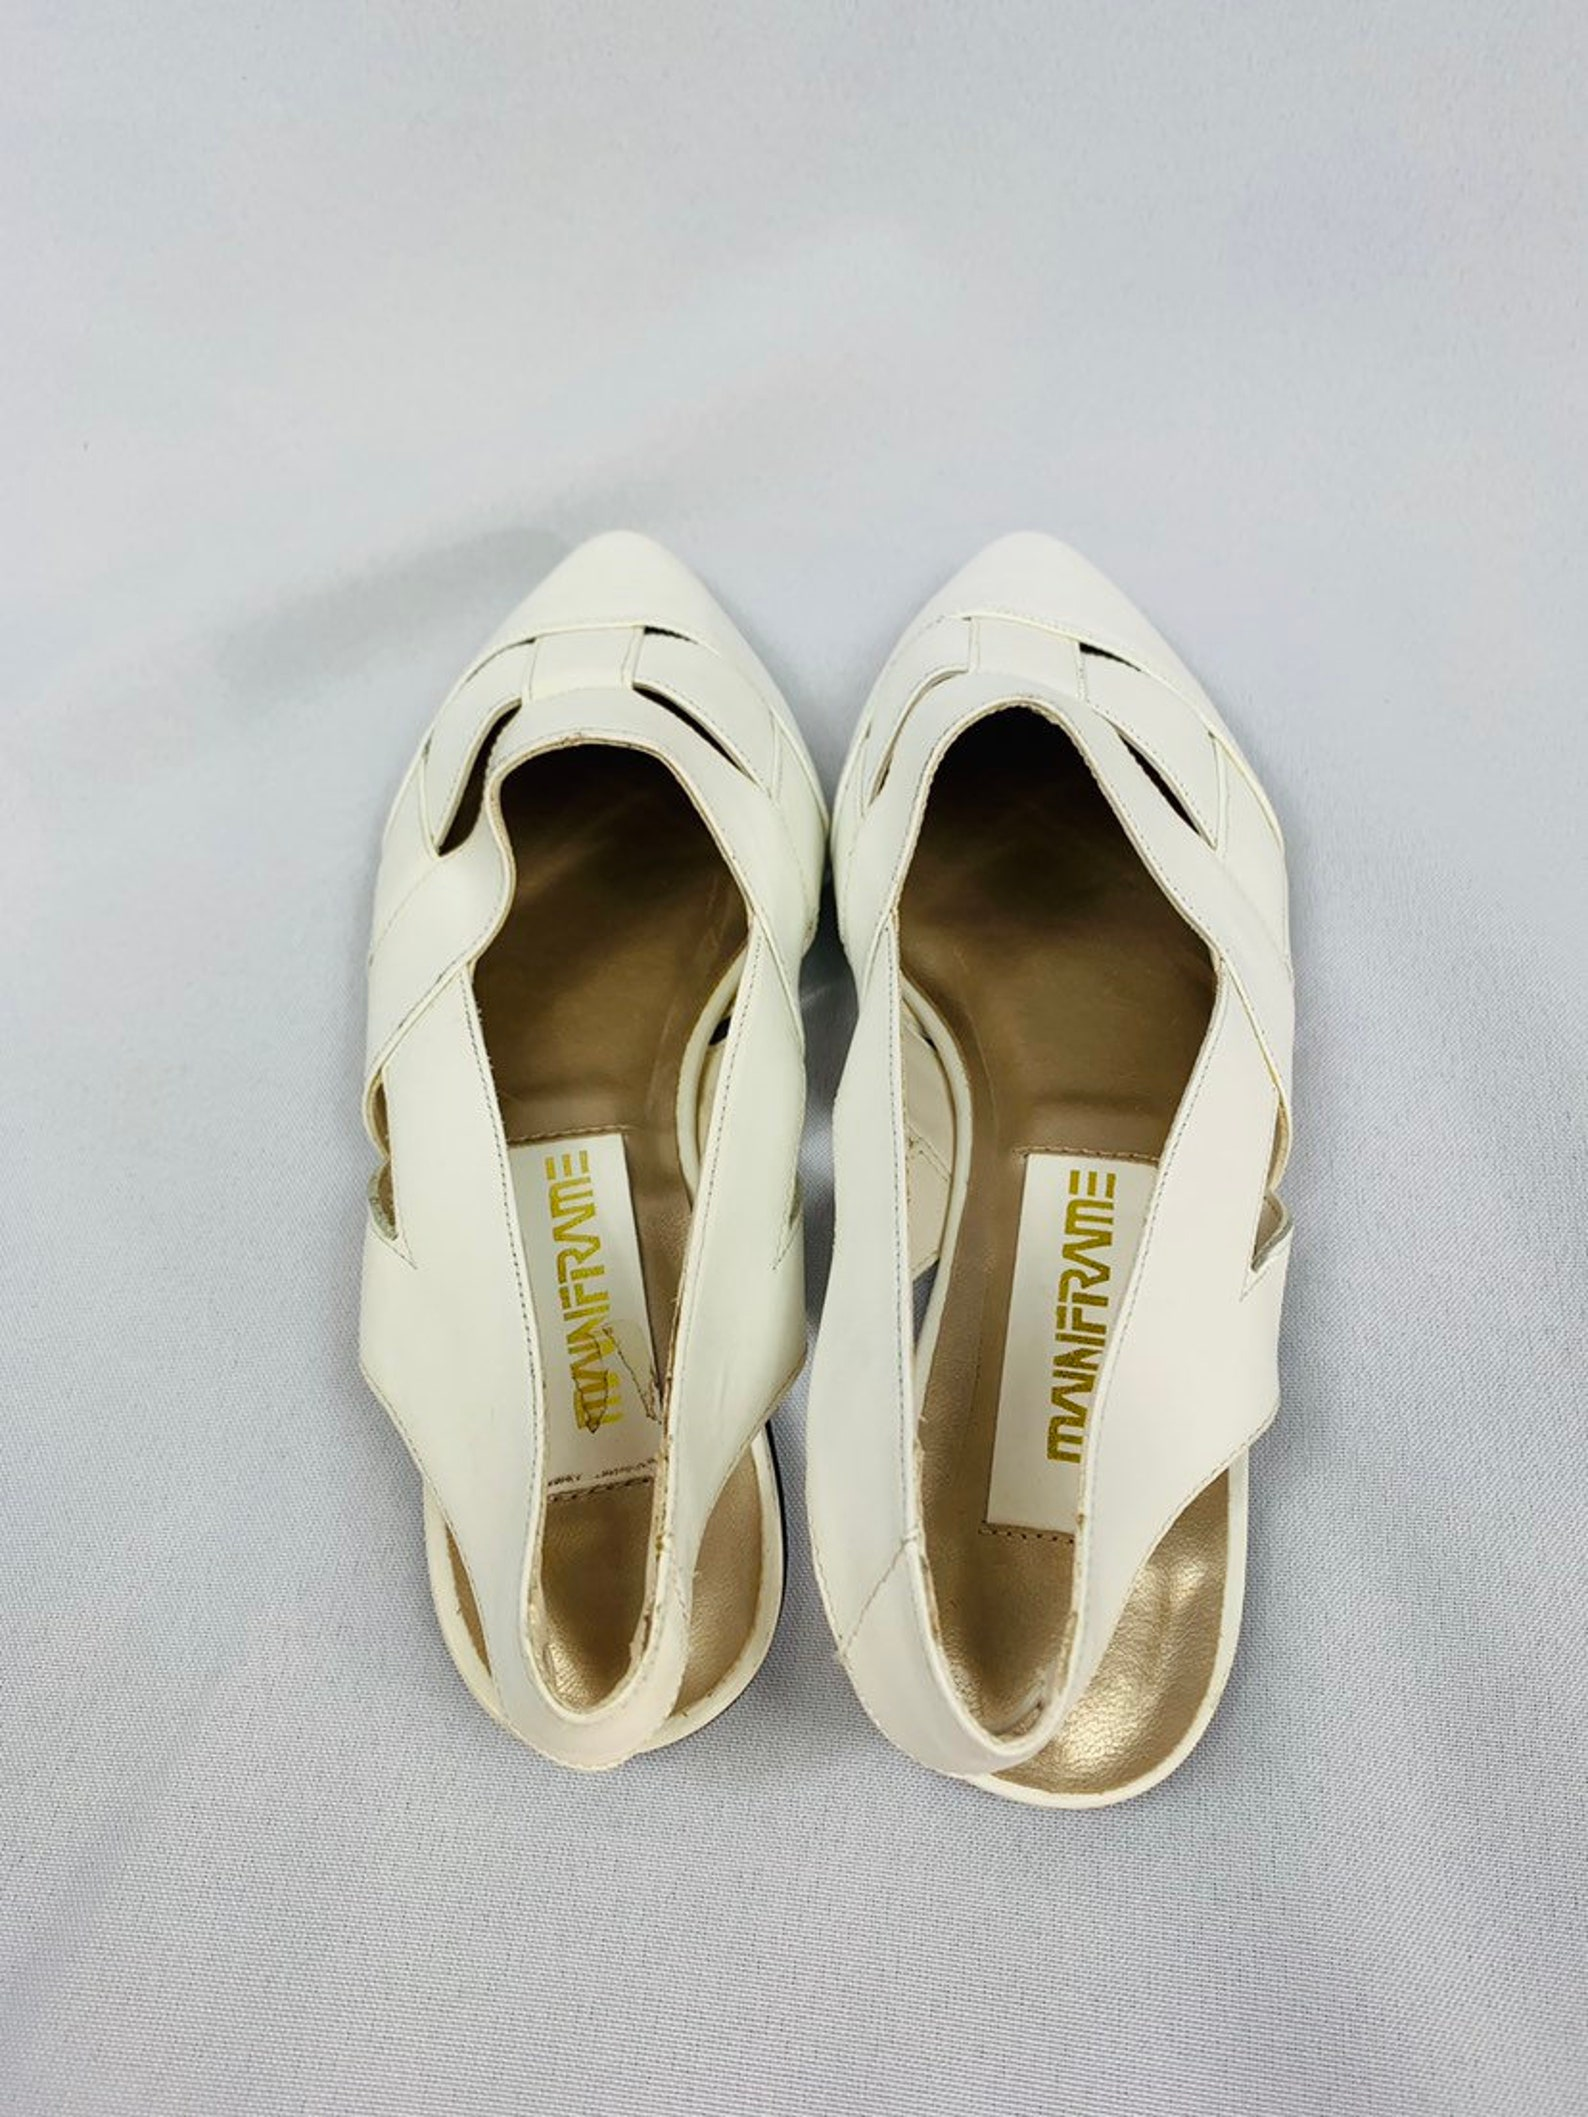 80s white pointed toe slingback flats by mainframe, white strappy cut out flats, vintage ballet flats, new old stock, deadstock,